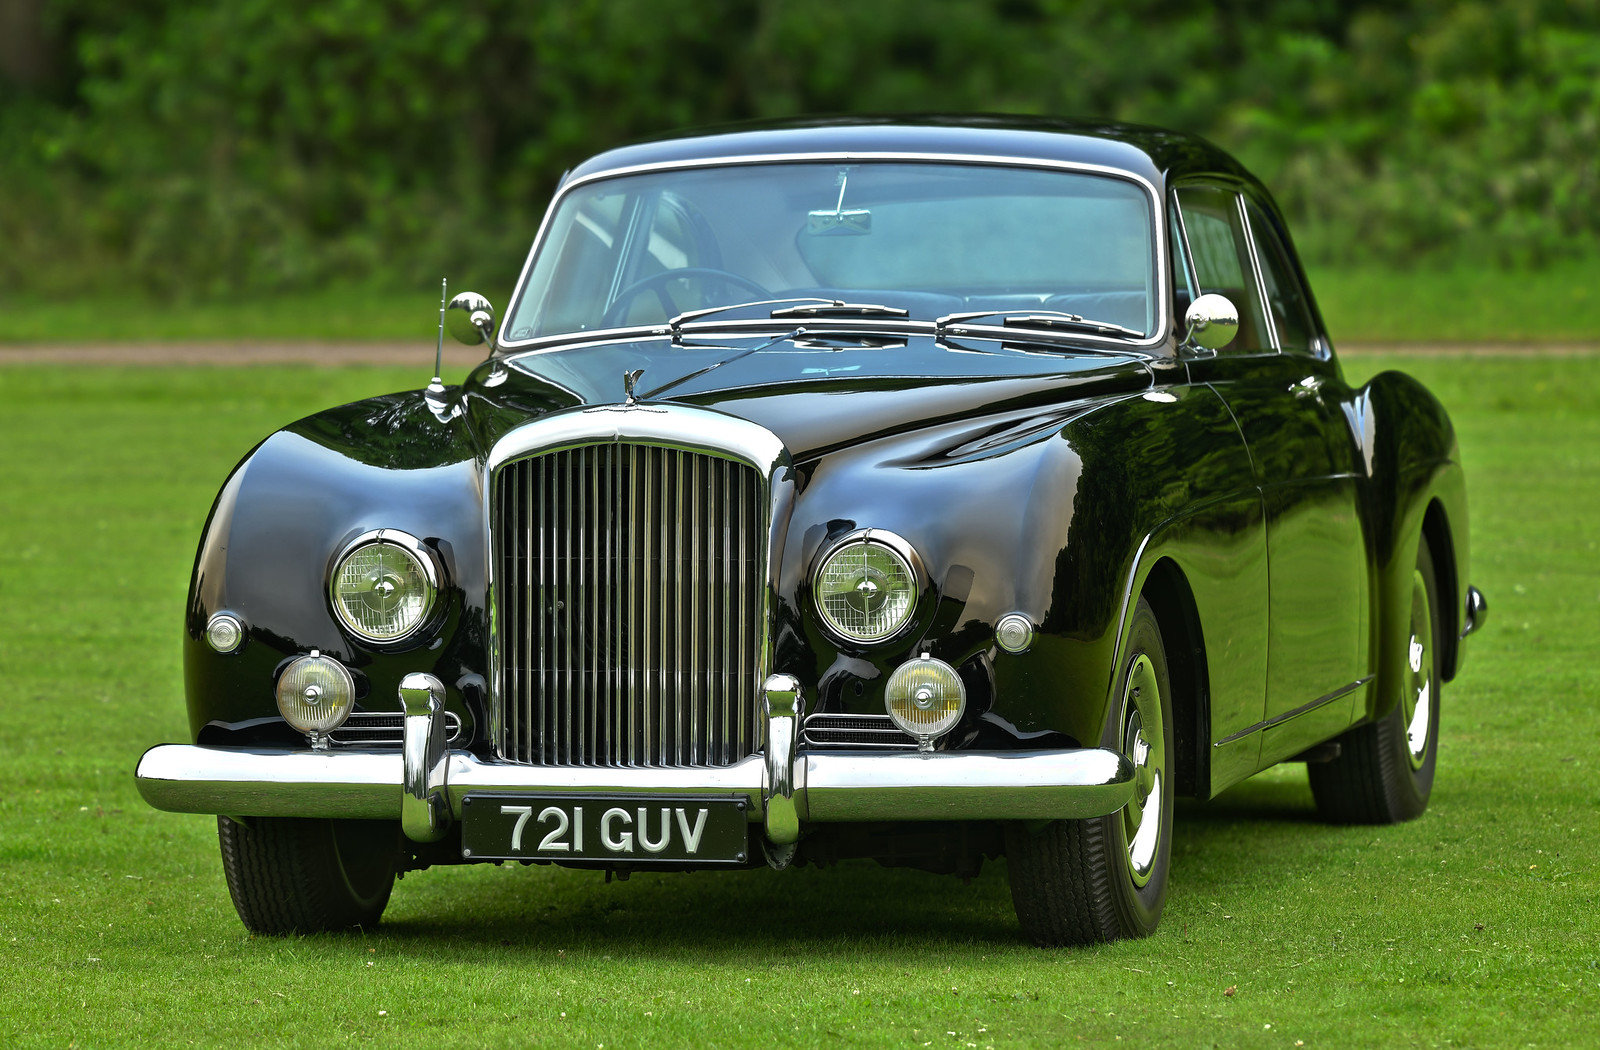 1957 Bentley S1 Continental H.J. Mulliner Fastback For Sale (picture 2 of 6)